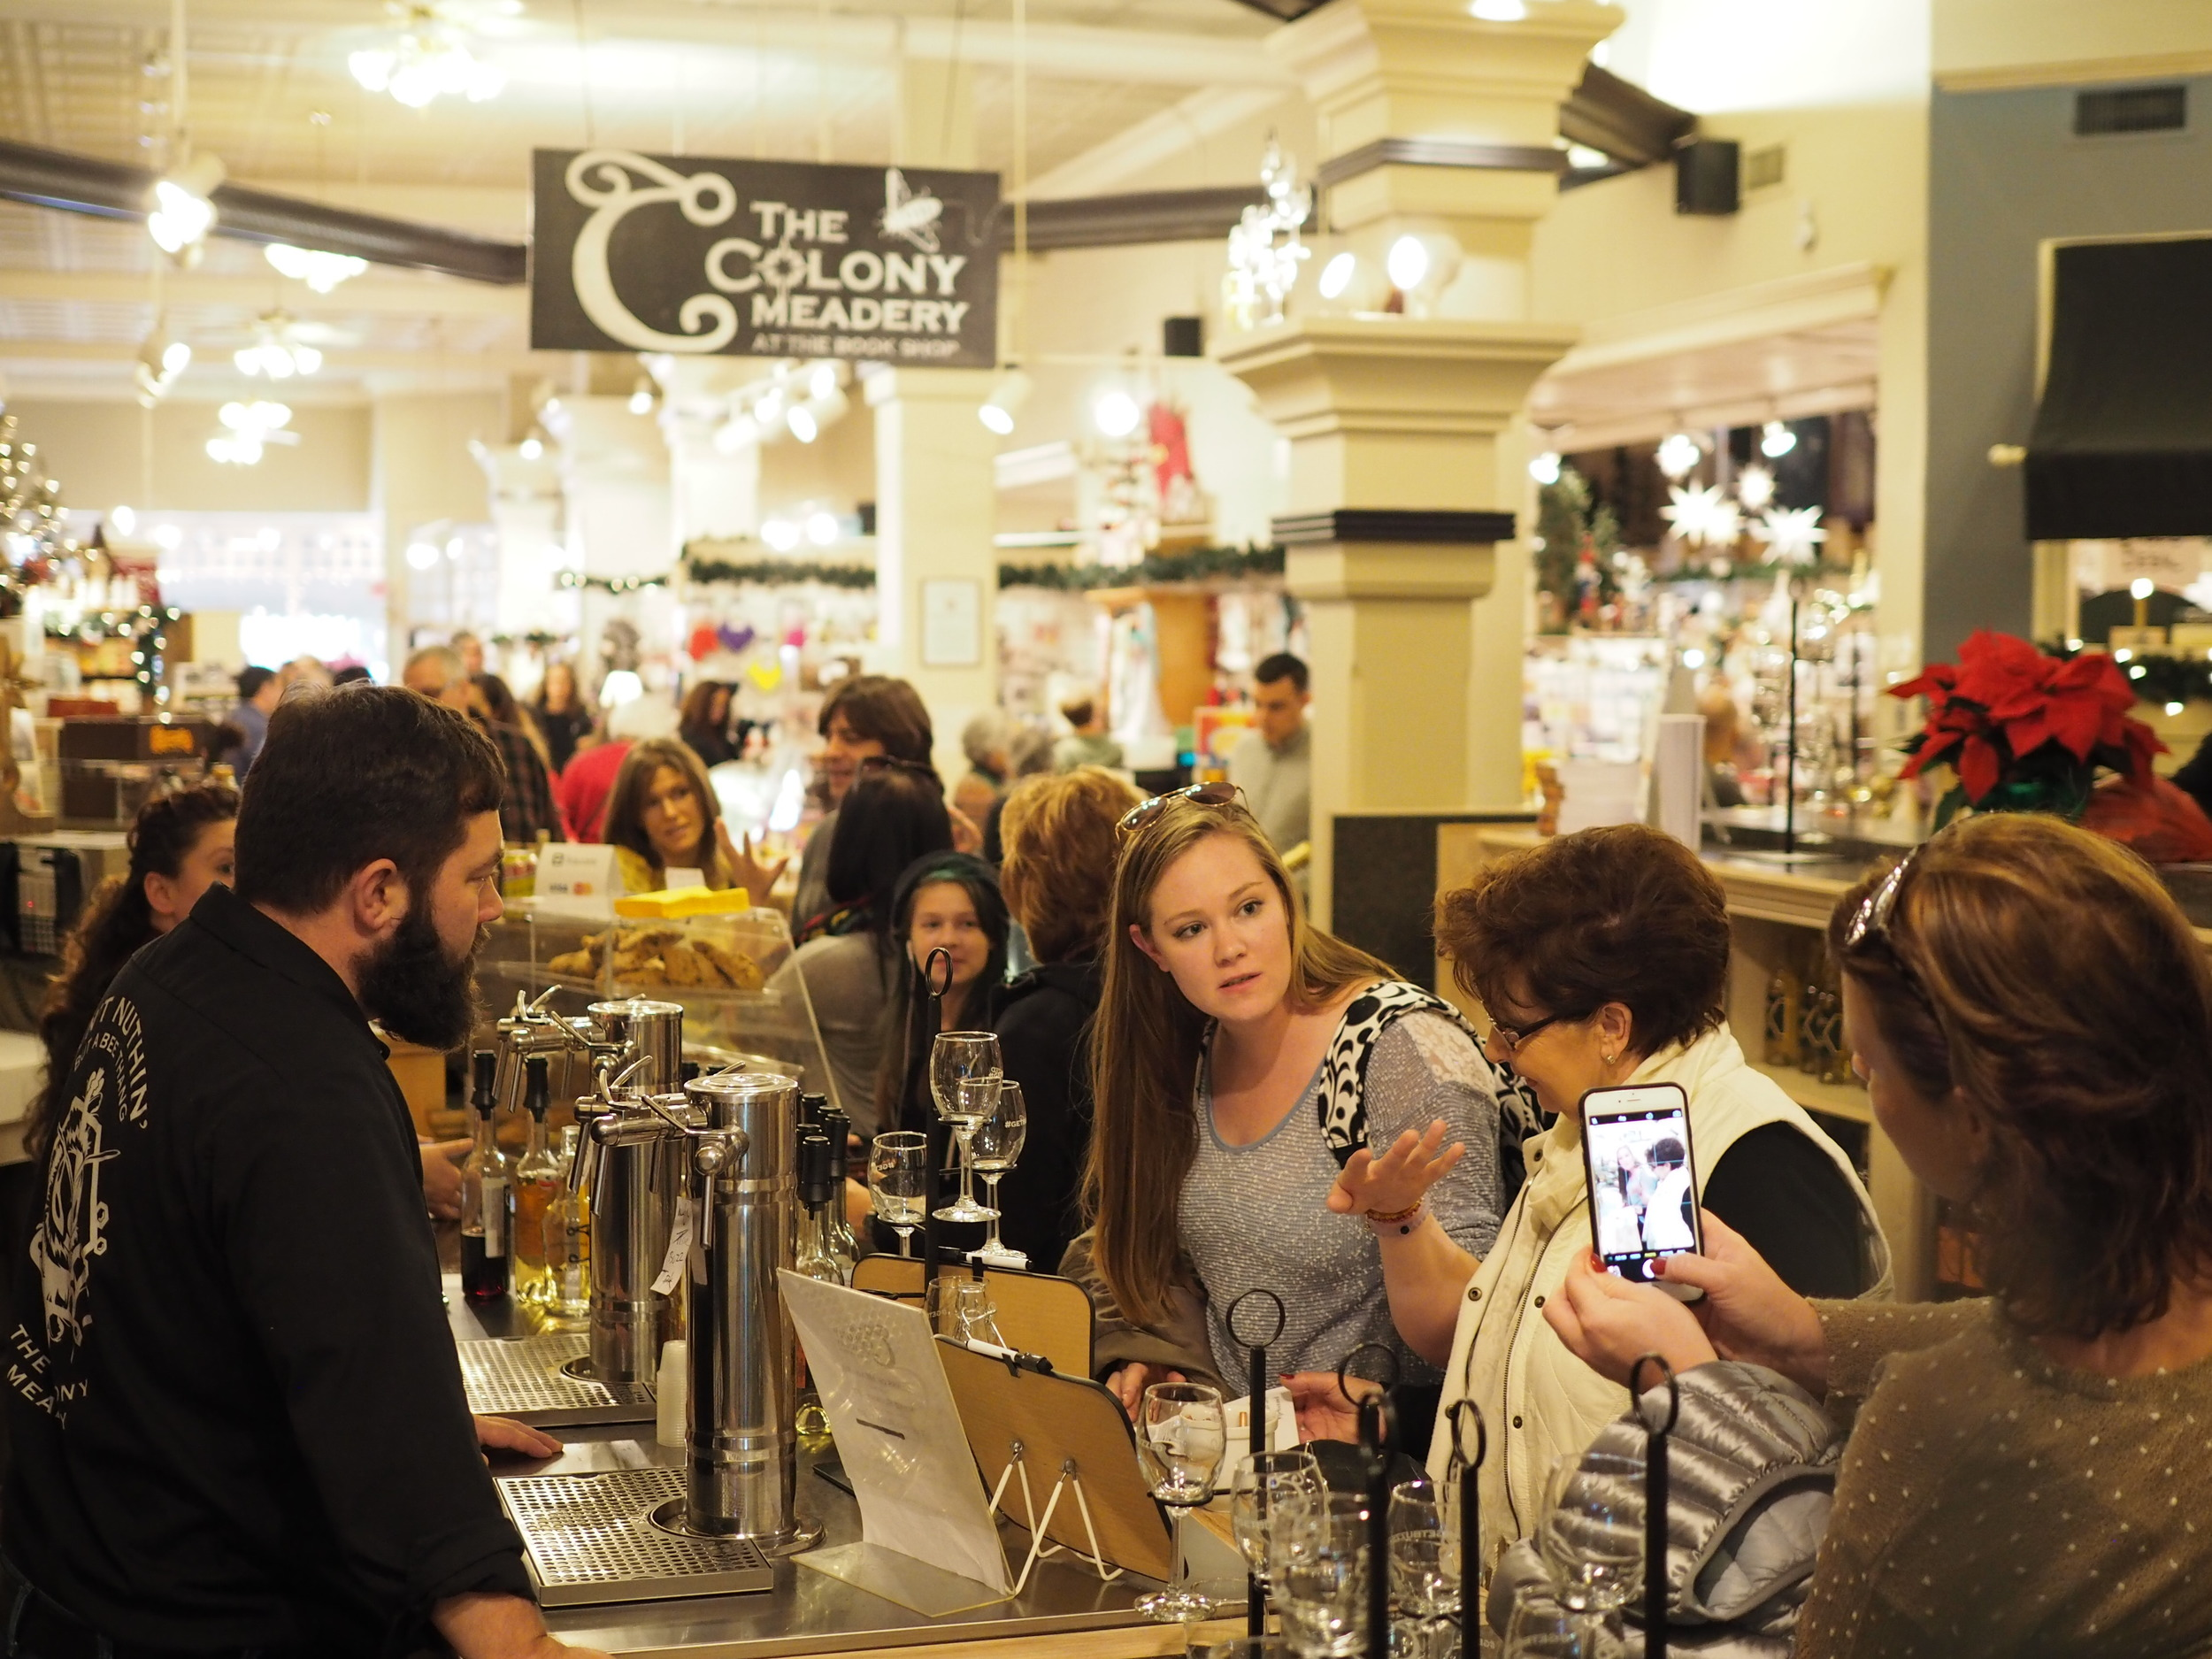 Visit The Colony Meadery at the Moravian Book Shop in Downtown Bethlehem this holiday season